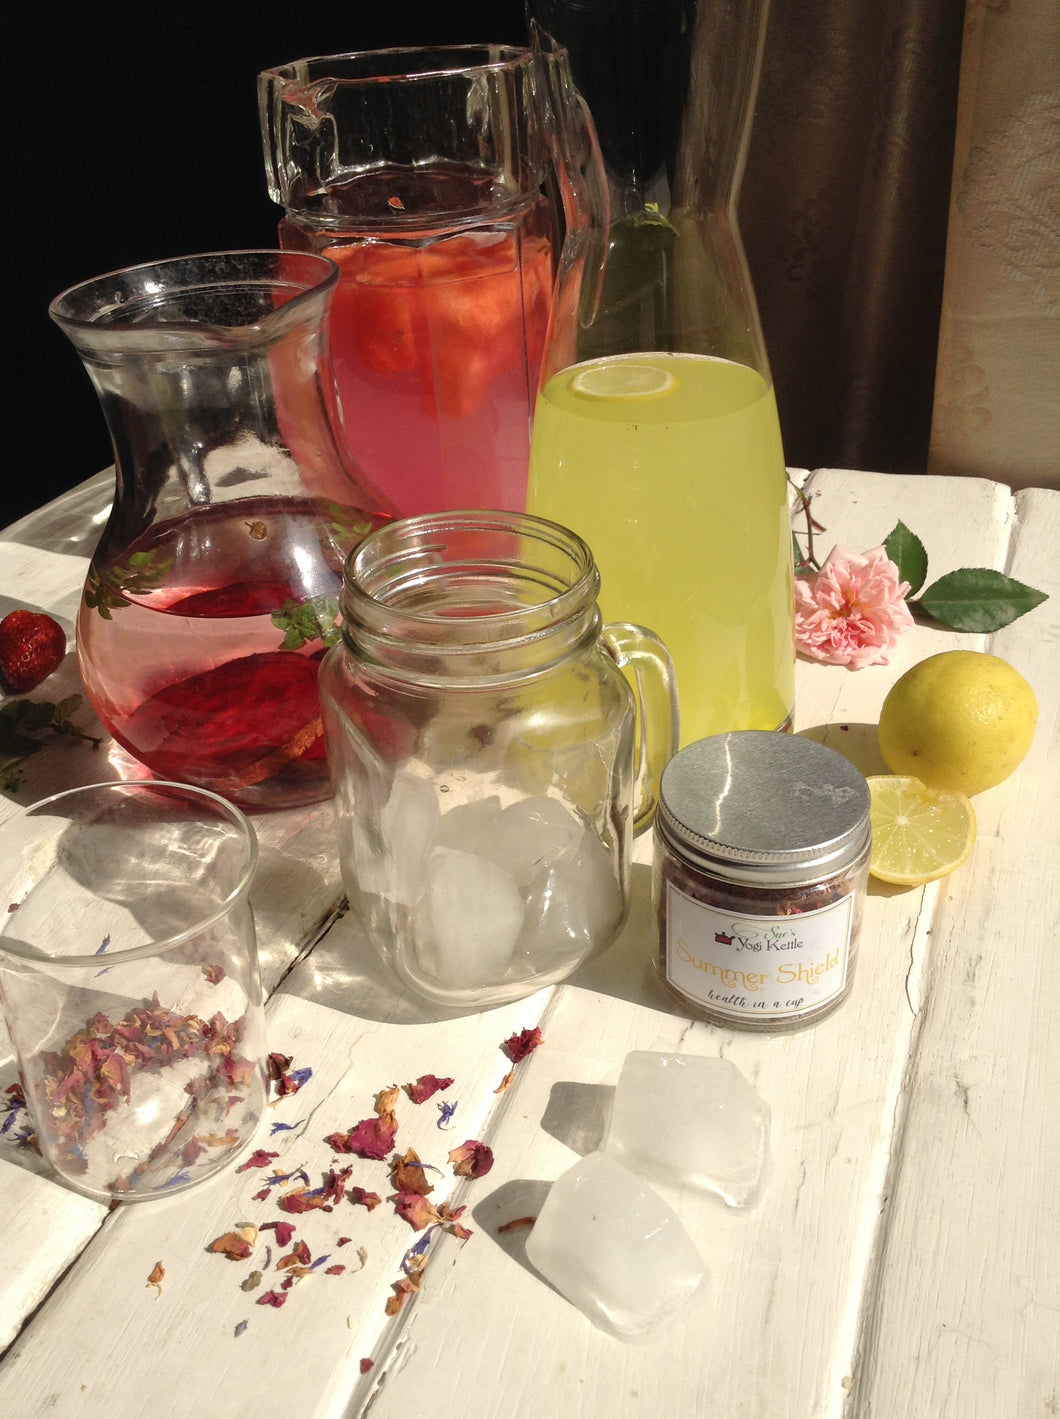 A freshly brewed batch of cold Summer Shield Tisane in a glass jug by Sue's Yogi Kettle